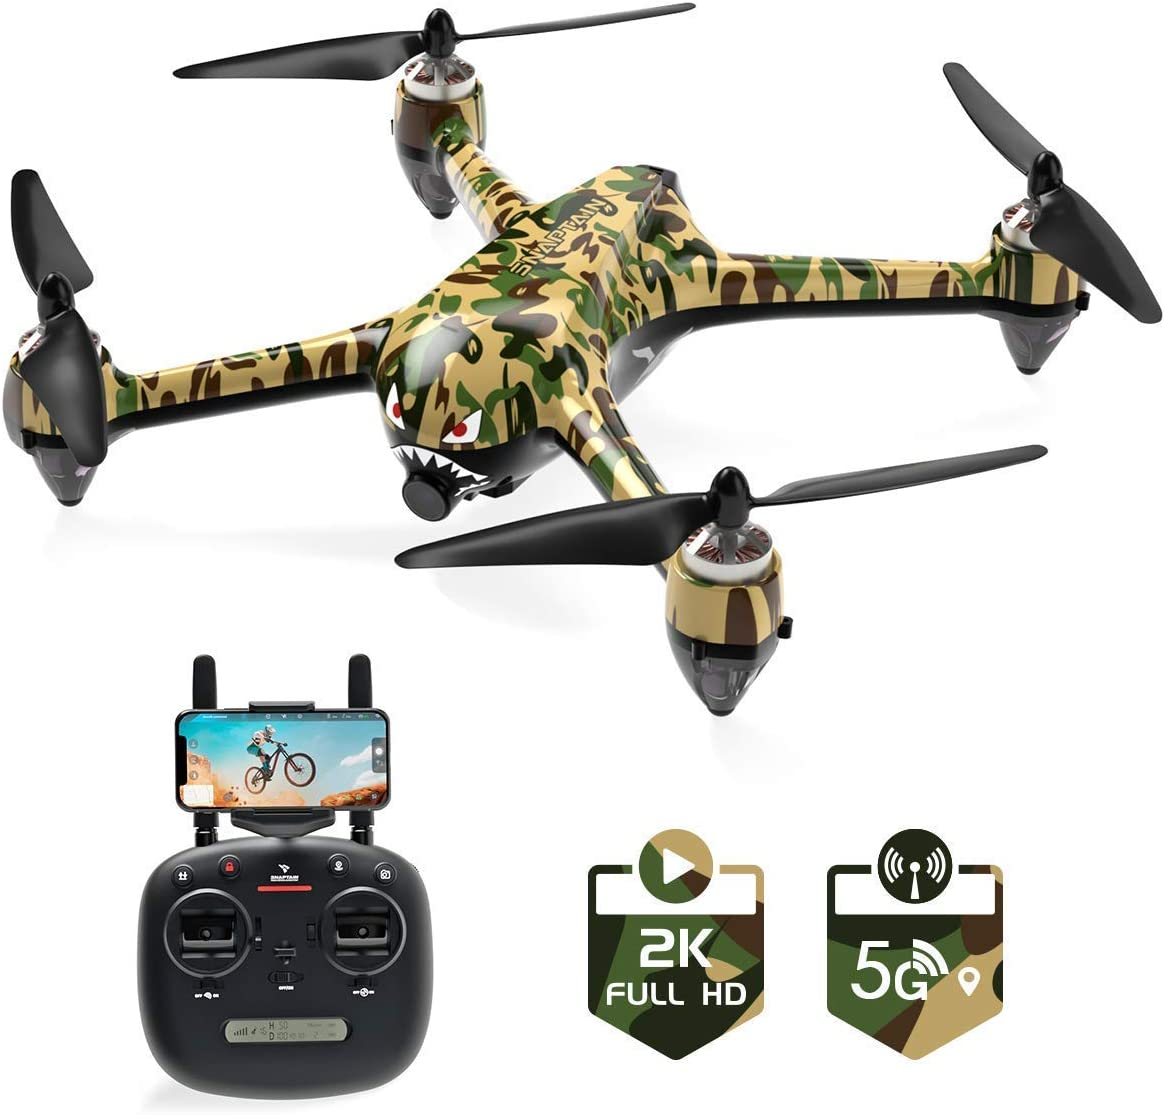 SNAPTAIN SP700 GPS Drone with Brushless Motor, 5G WiFi FPV RC Drone for Adult with 2K Camera Live Video, Follow Me, APP Control, GPS RTH, Way Points, Point of Interest, Module Battery